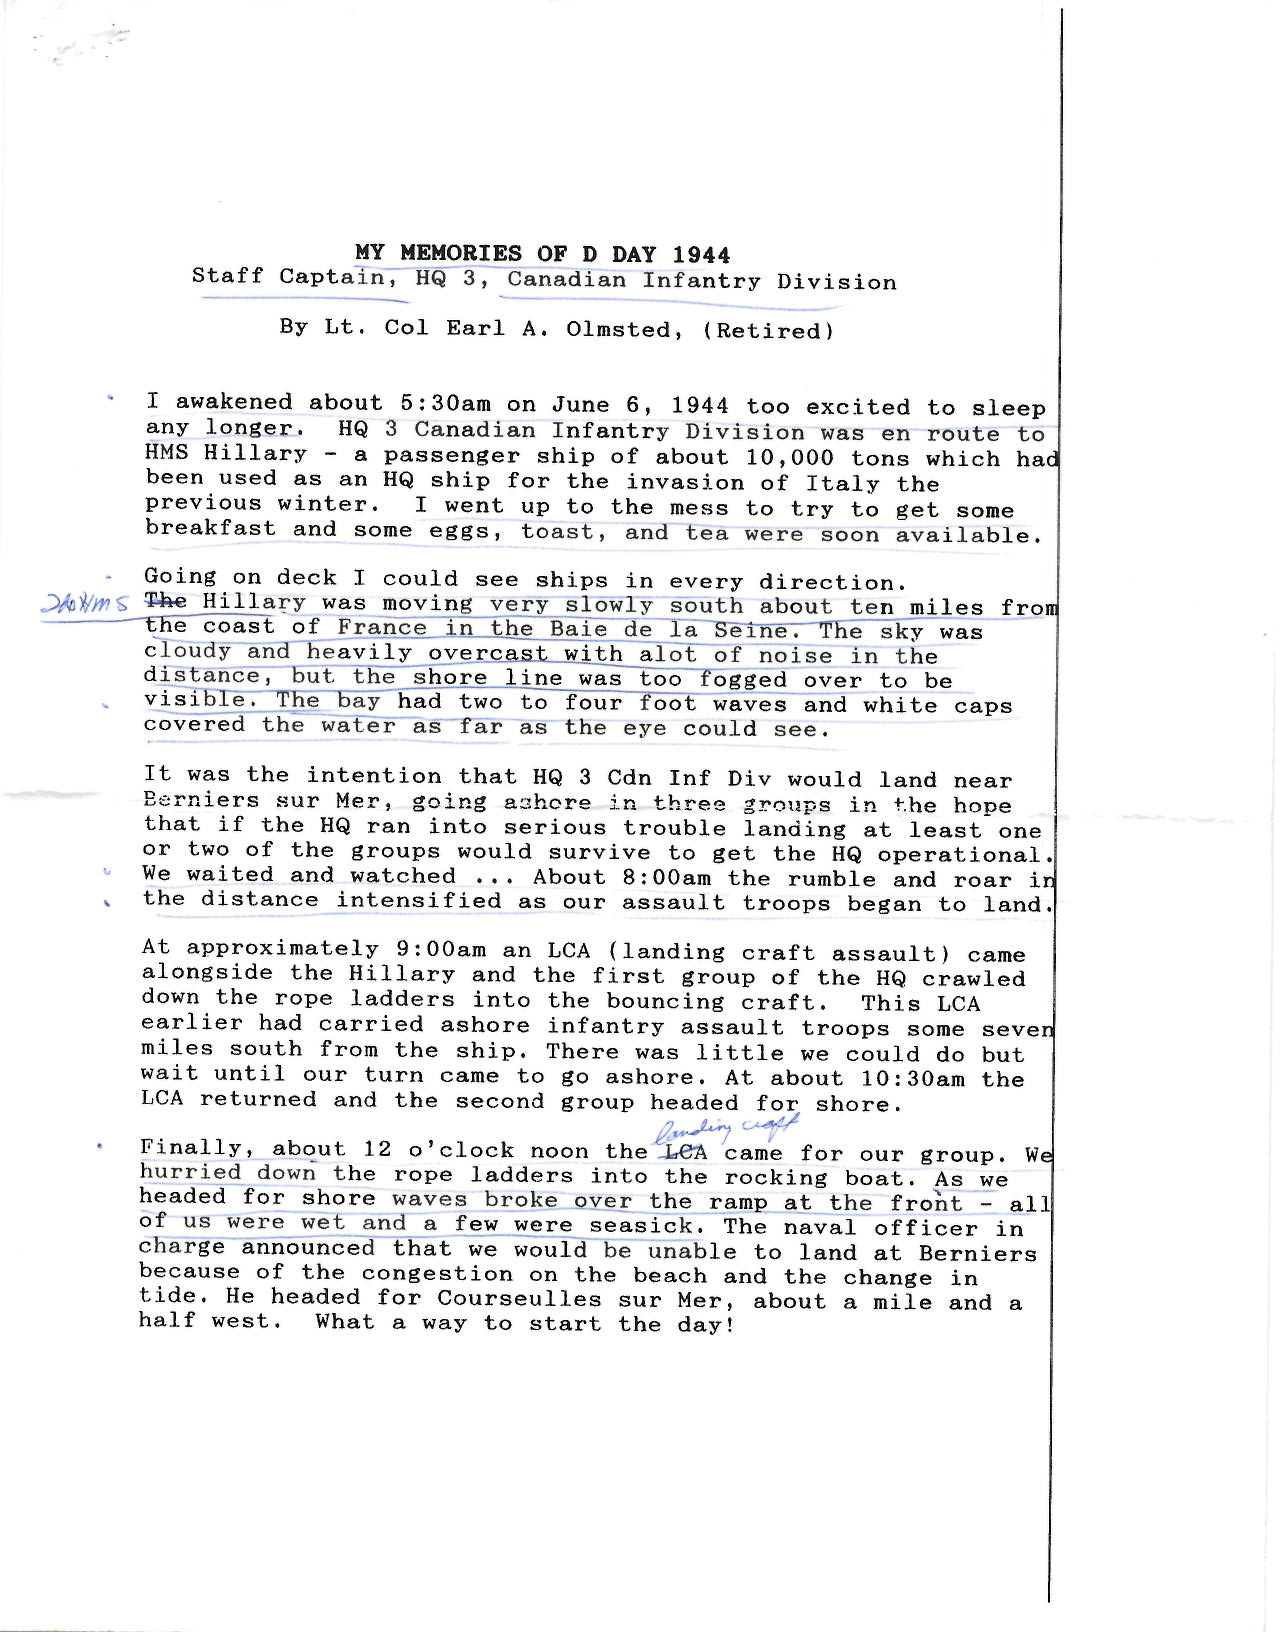 E. A. Olmsted D-Day Account  (Funeral Reading)_Page_1.jpg